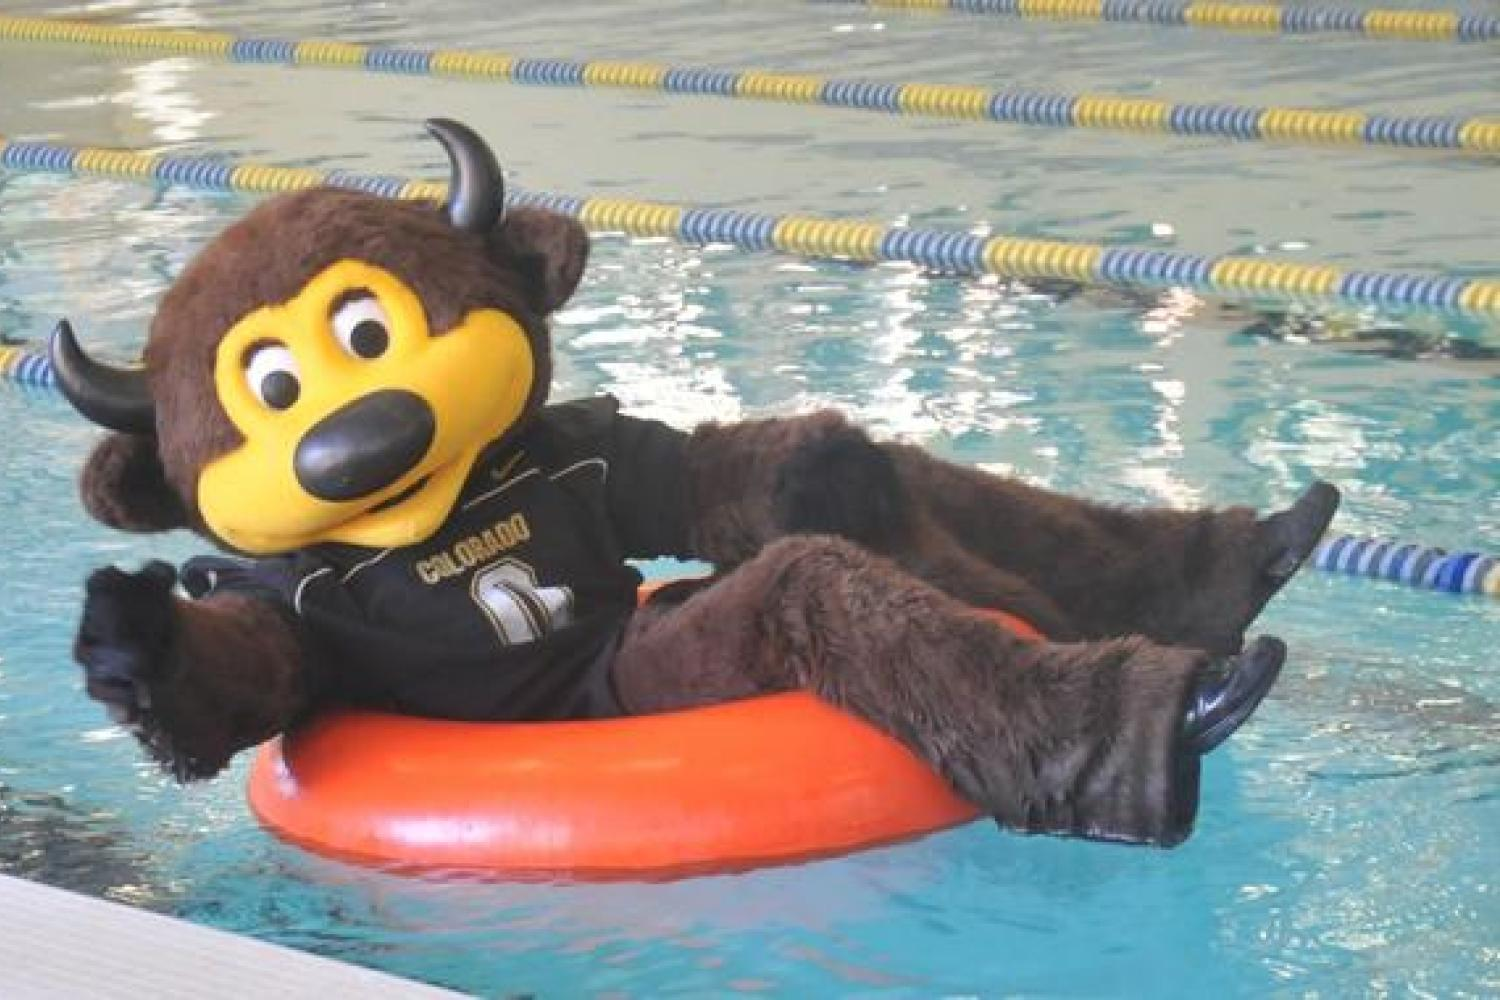 Chip has won best mascot in the nation twice